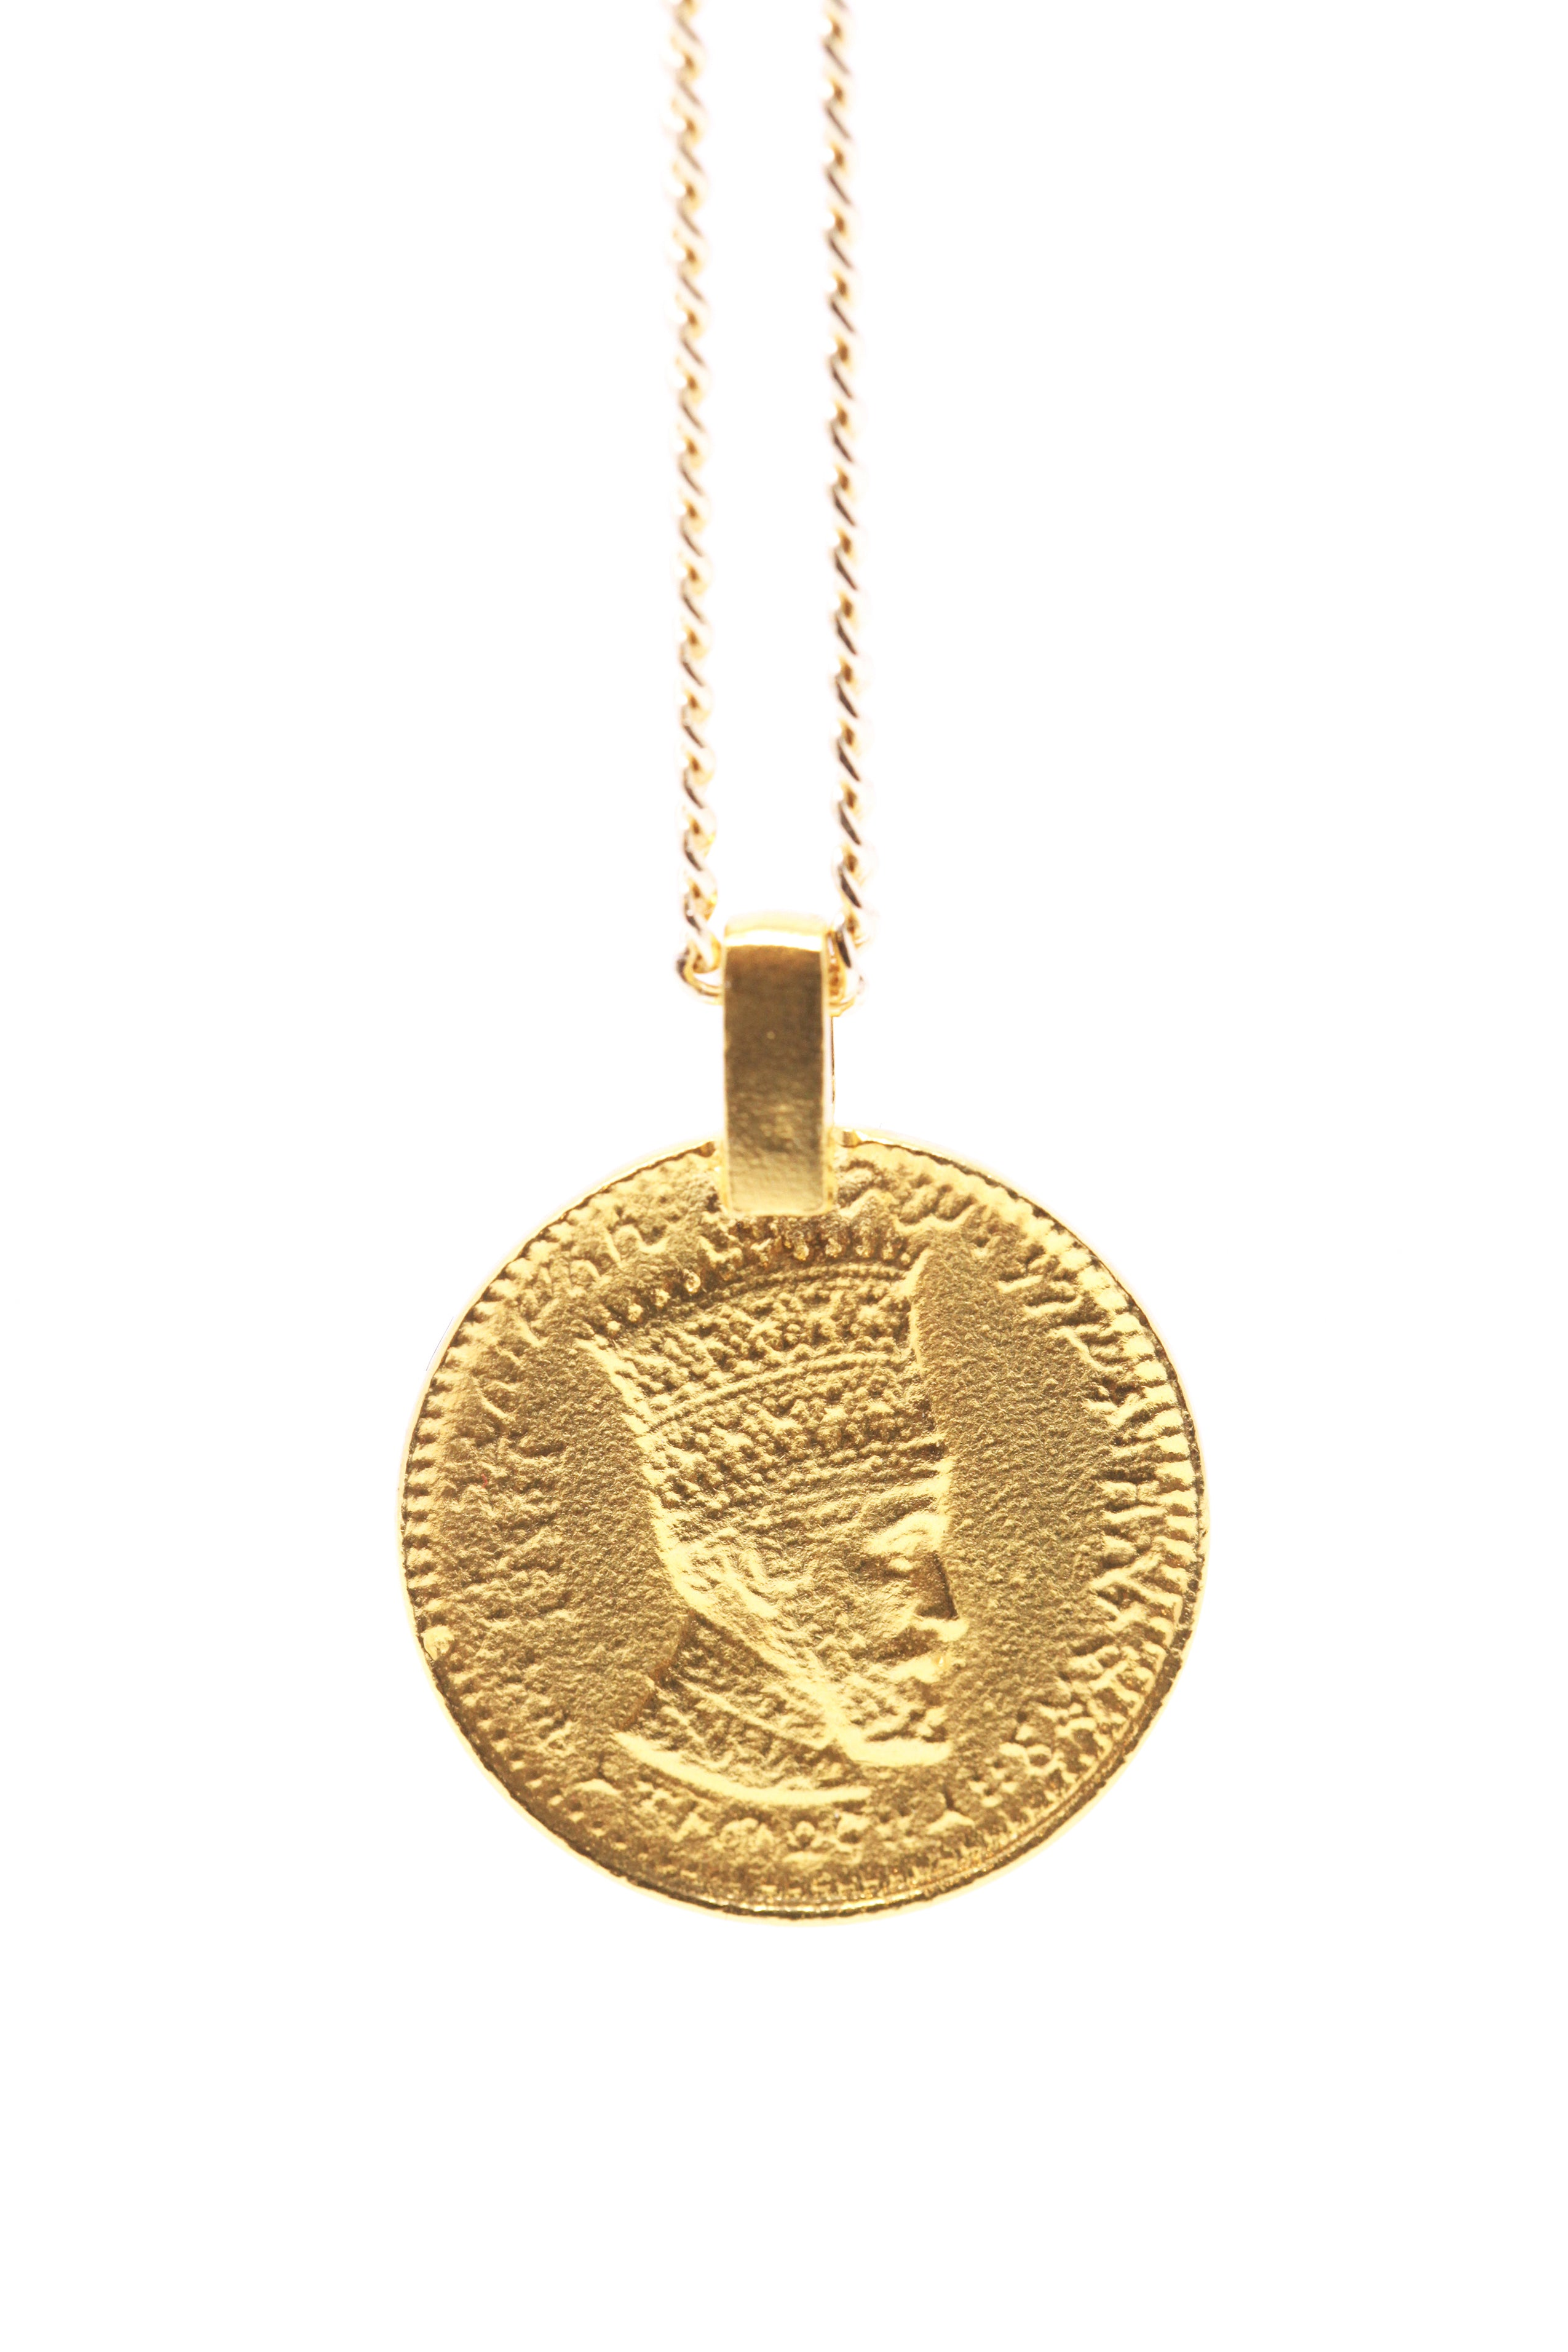 THE RASTAFARI Coin Necklace Sterling Silver